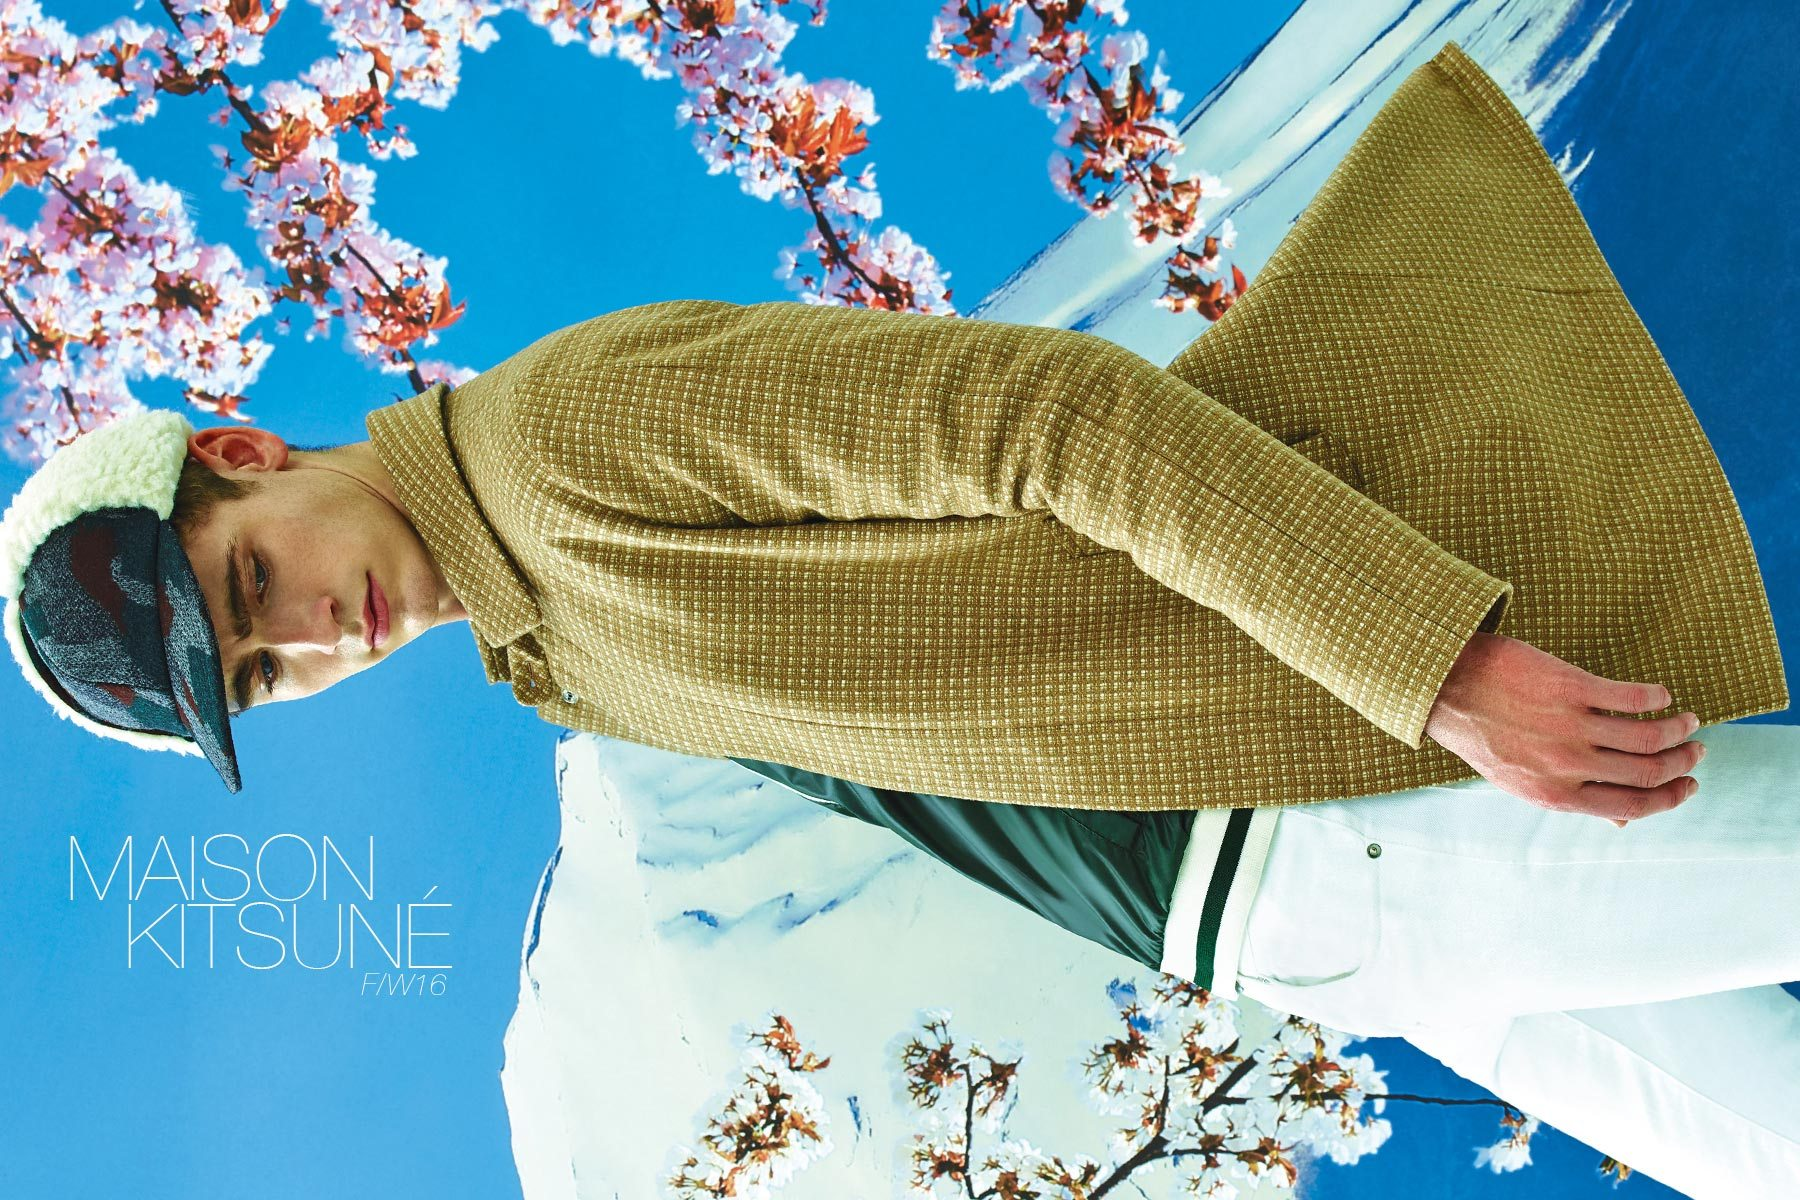 The latest Maison Kitsuné menswear lookbook, for F/W16, by photographer Pierpaolo Ferrari. Pony boy magazine NY.